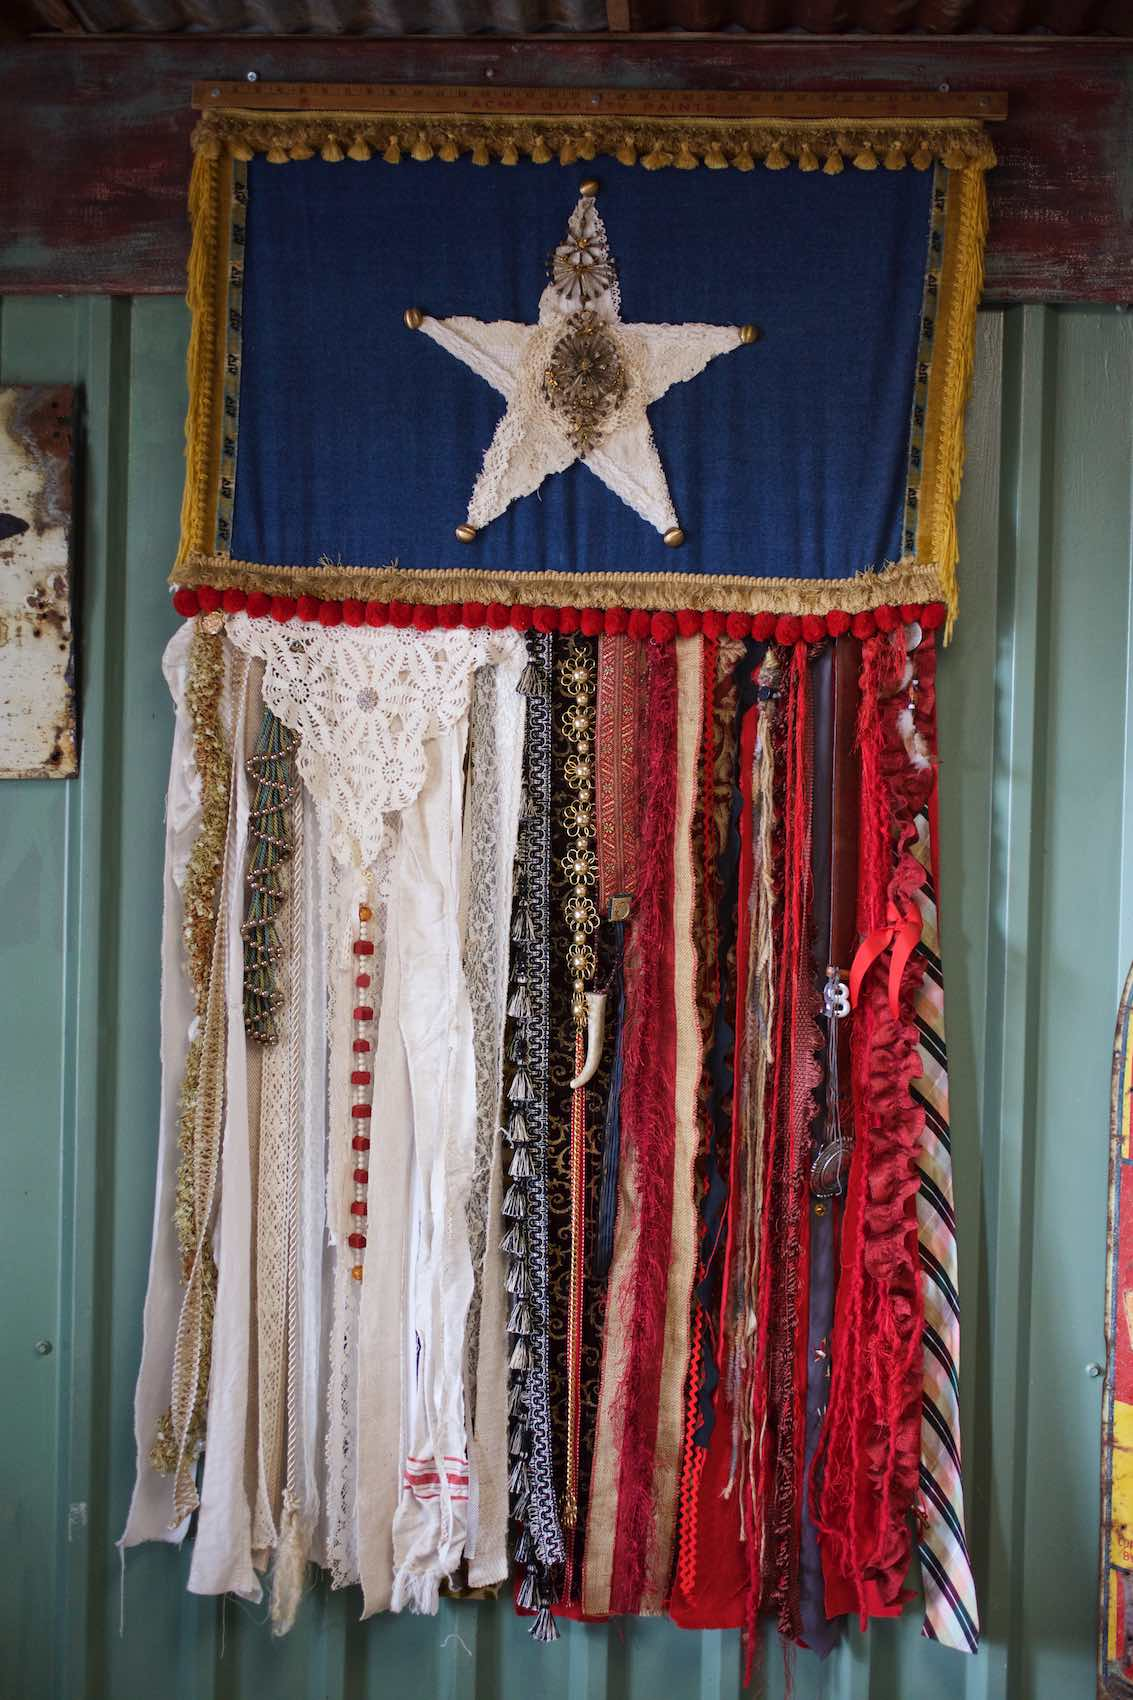 Jody Horton Photography - Decorative representation of Texas Flag.